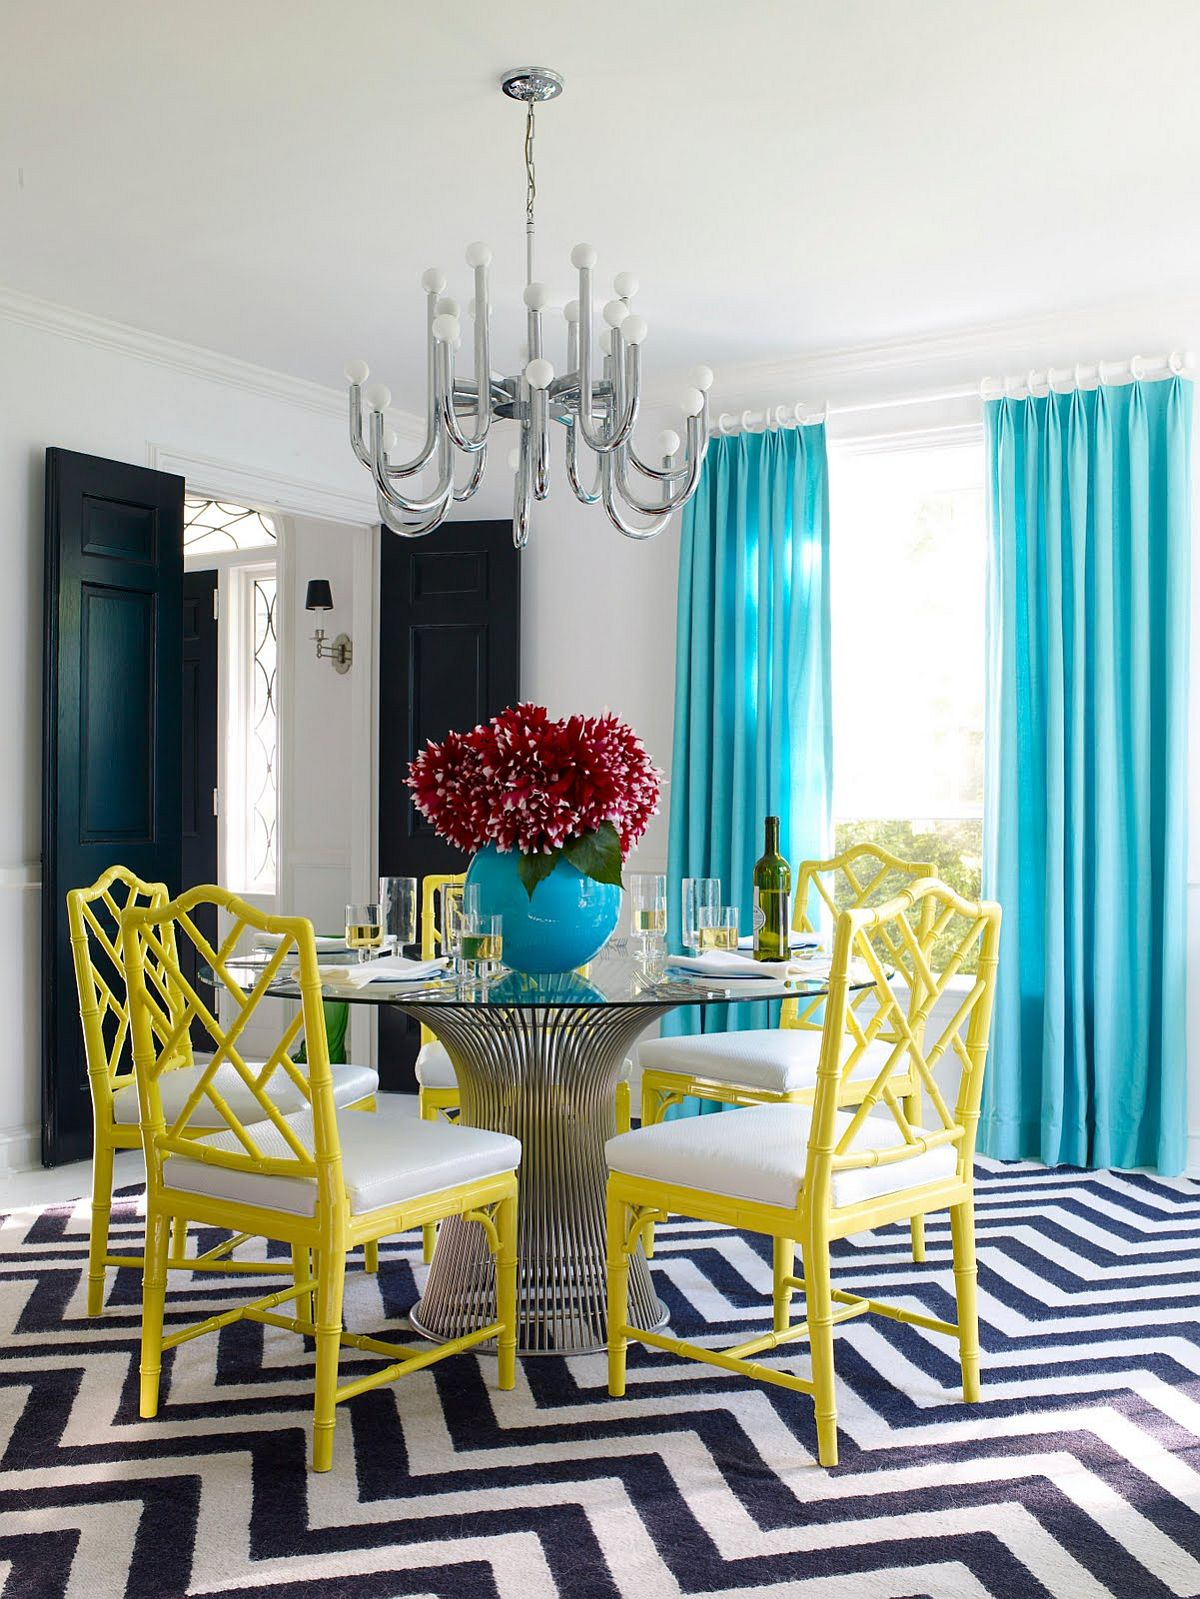 Exquisite dining room with light blue drapes, yellow chairs and a snazzy chevron pattern rug